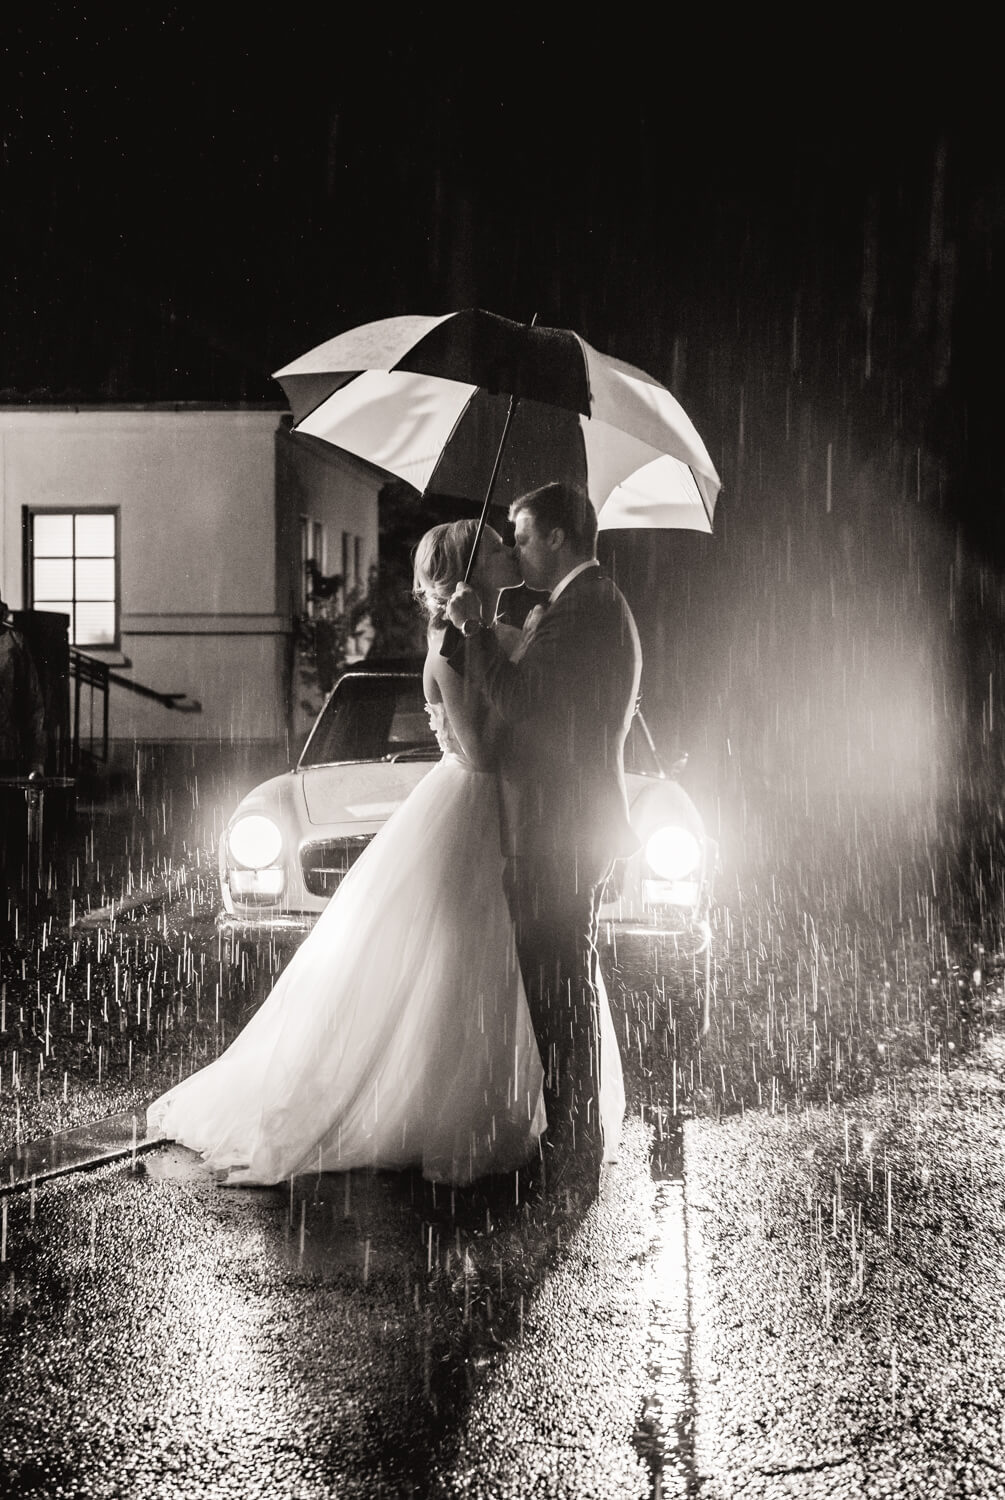 wedding-kiss-rain-headlights.jpg